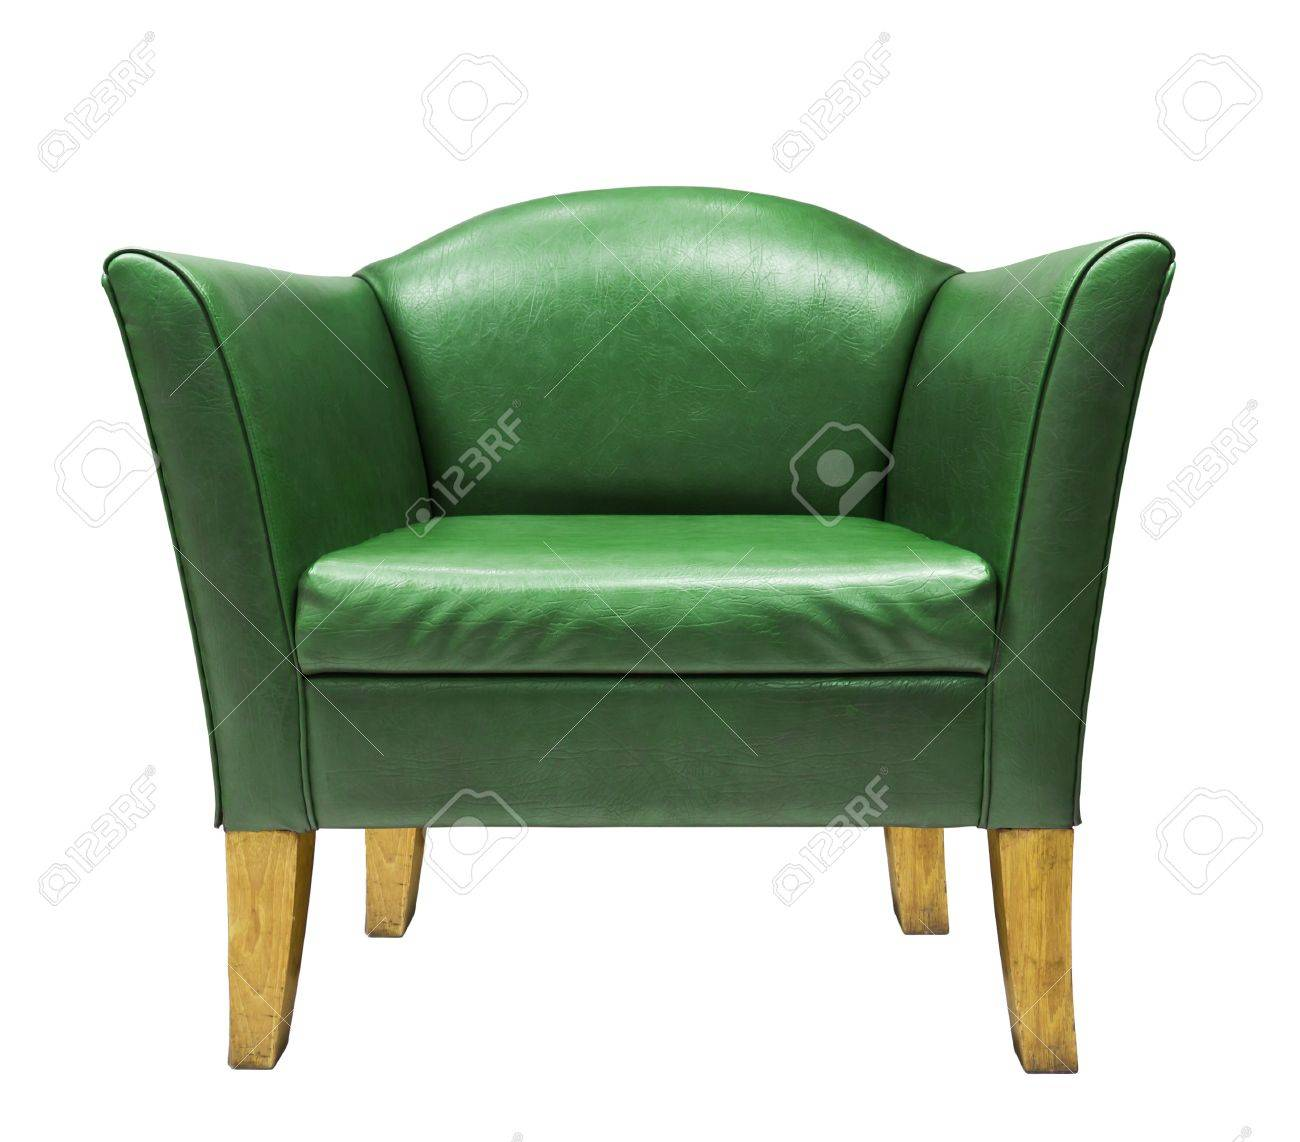 Expensive green leather armchair isolated on white background Stock Photo - 13209826